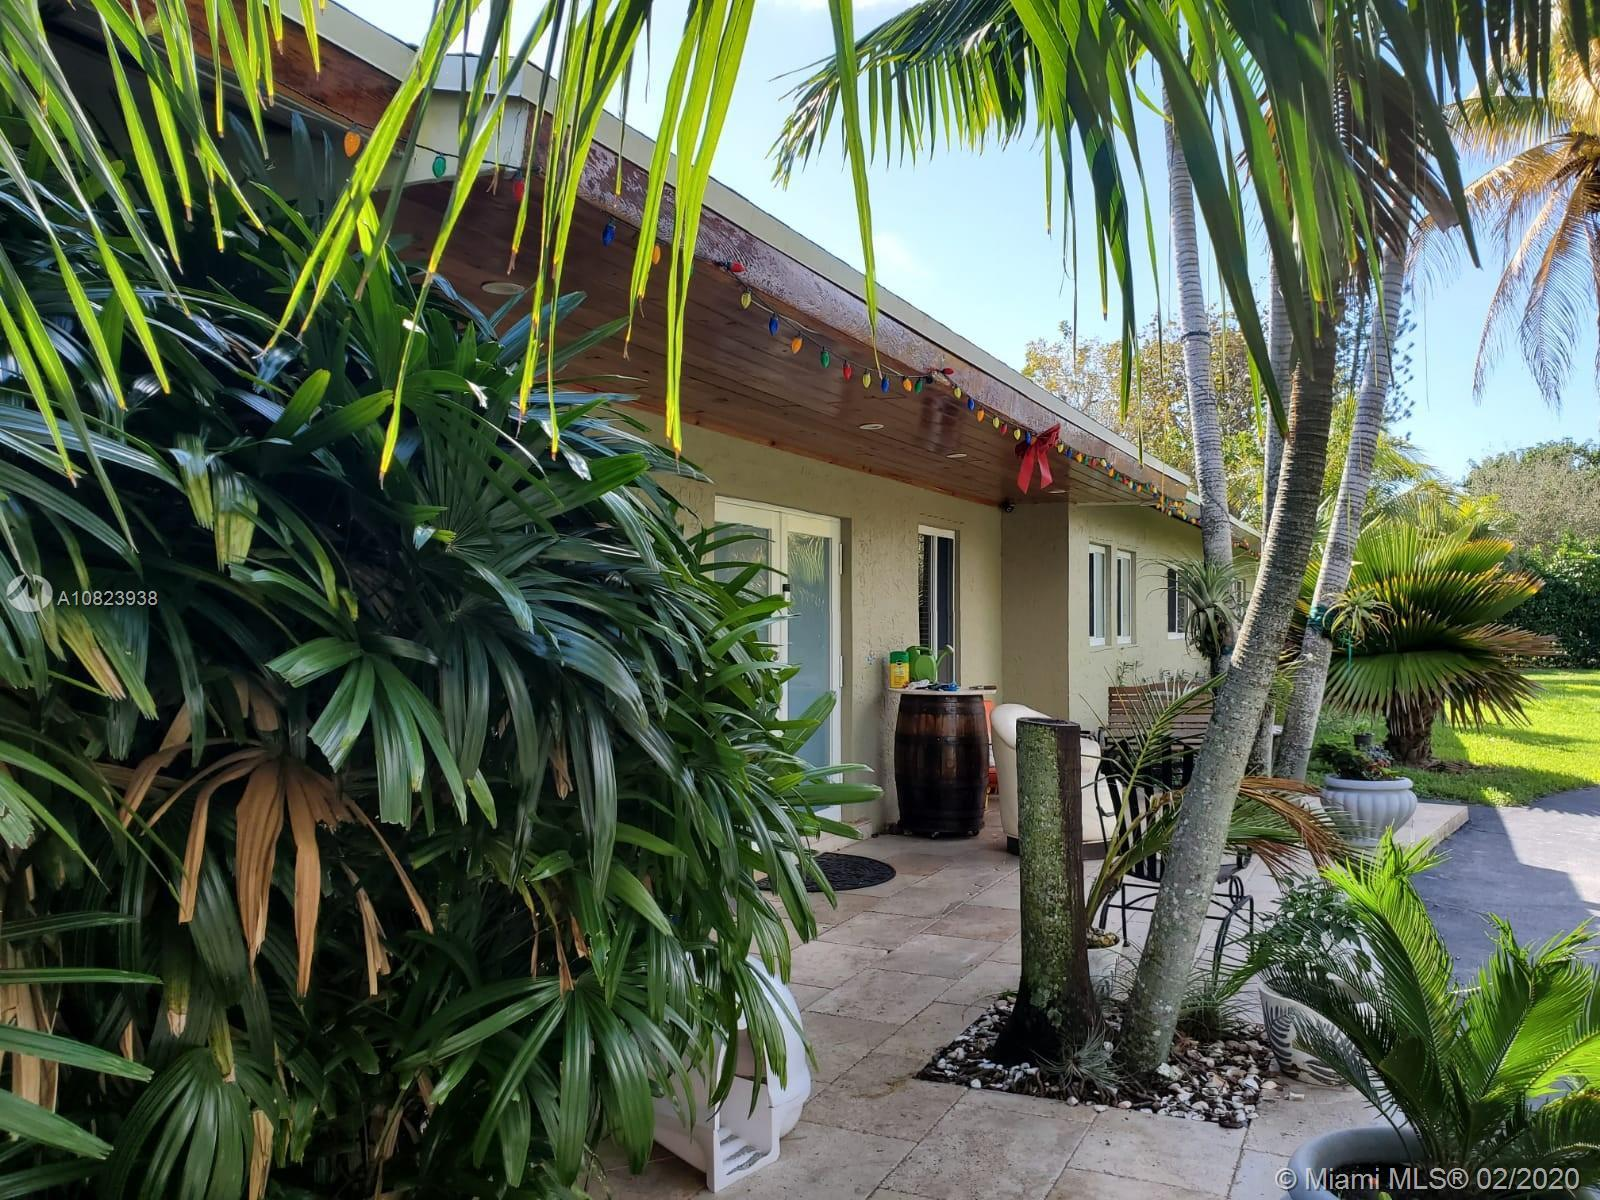 5/4 SINGLE STORY HOUSE WITH A SPECTACULAR CORNER LOT IN THE HEART OF PINECREST. THE HOME IS OVER 3,3